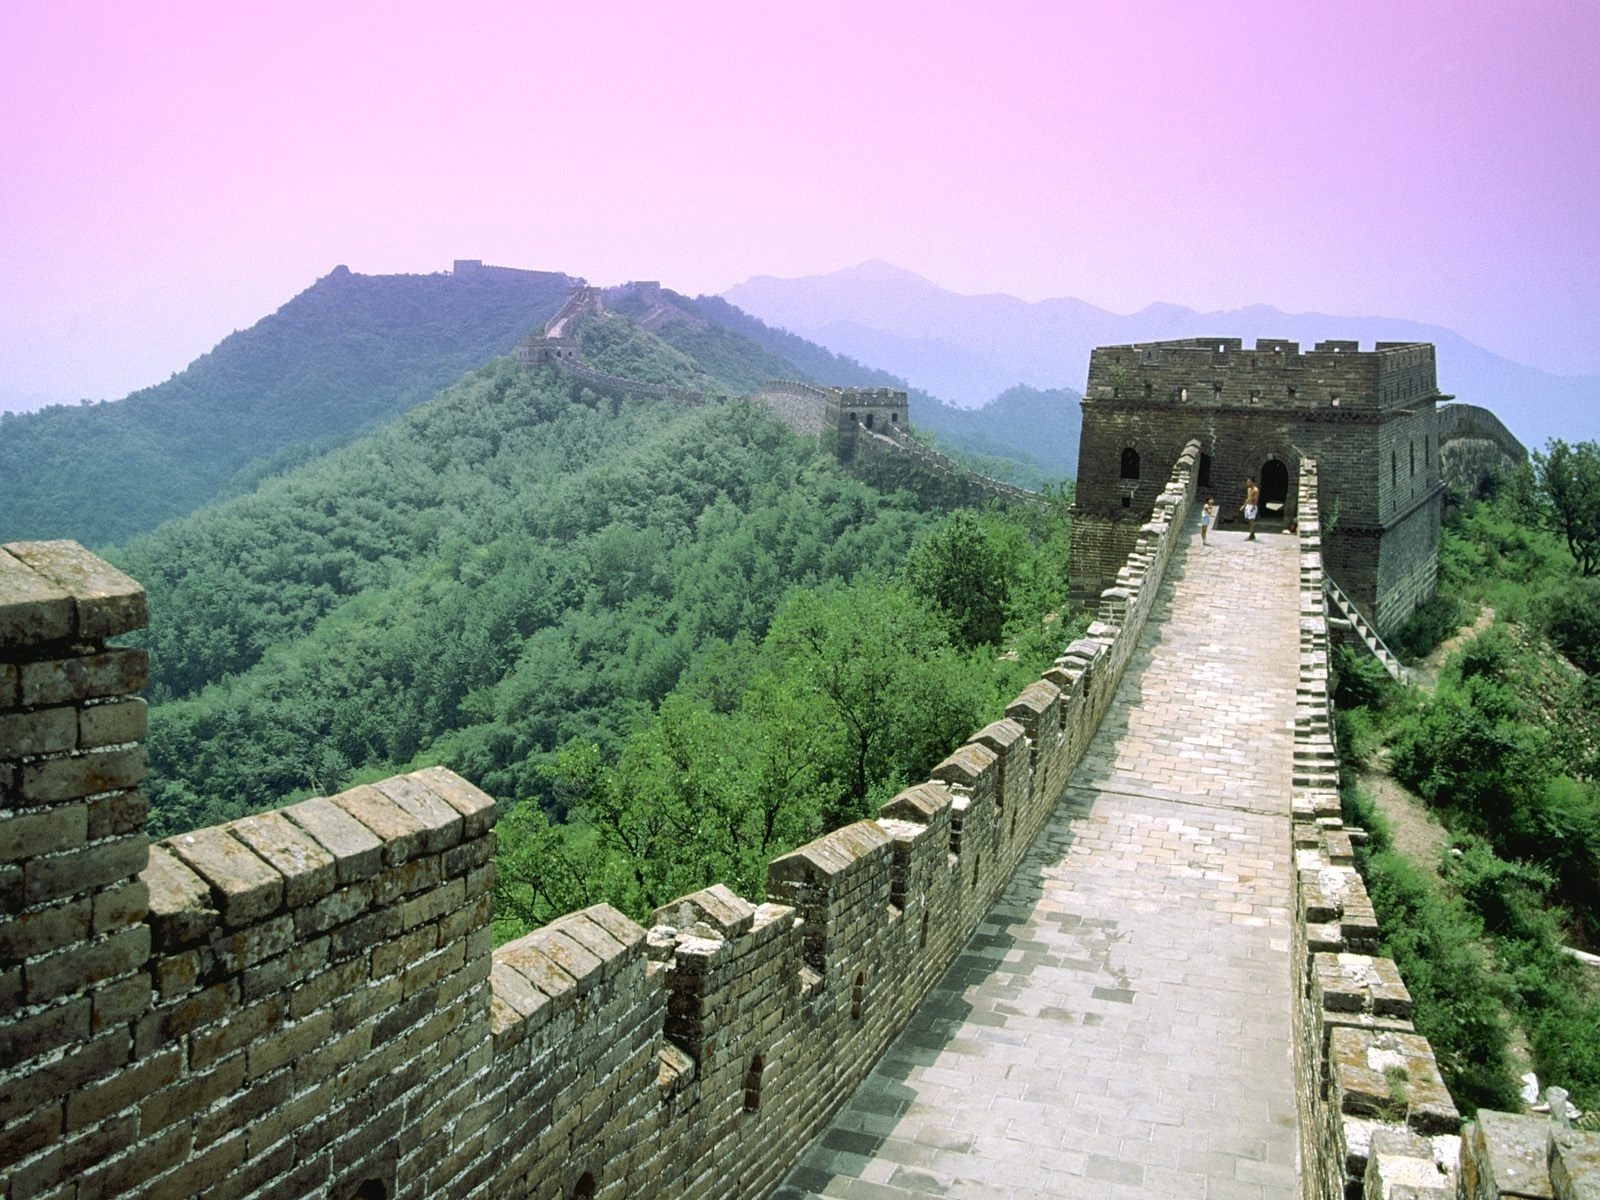 Great Wall Of China clipart Great Wall Of China Wallpaper High Resolution Wall Building KB Wallpapers 93